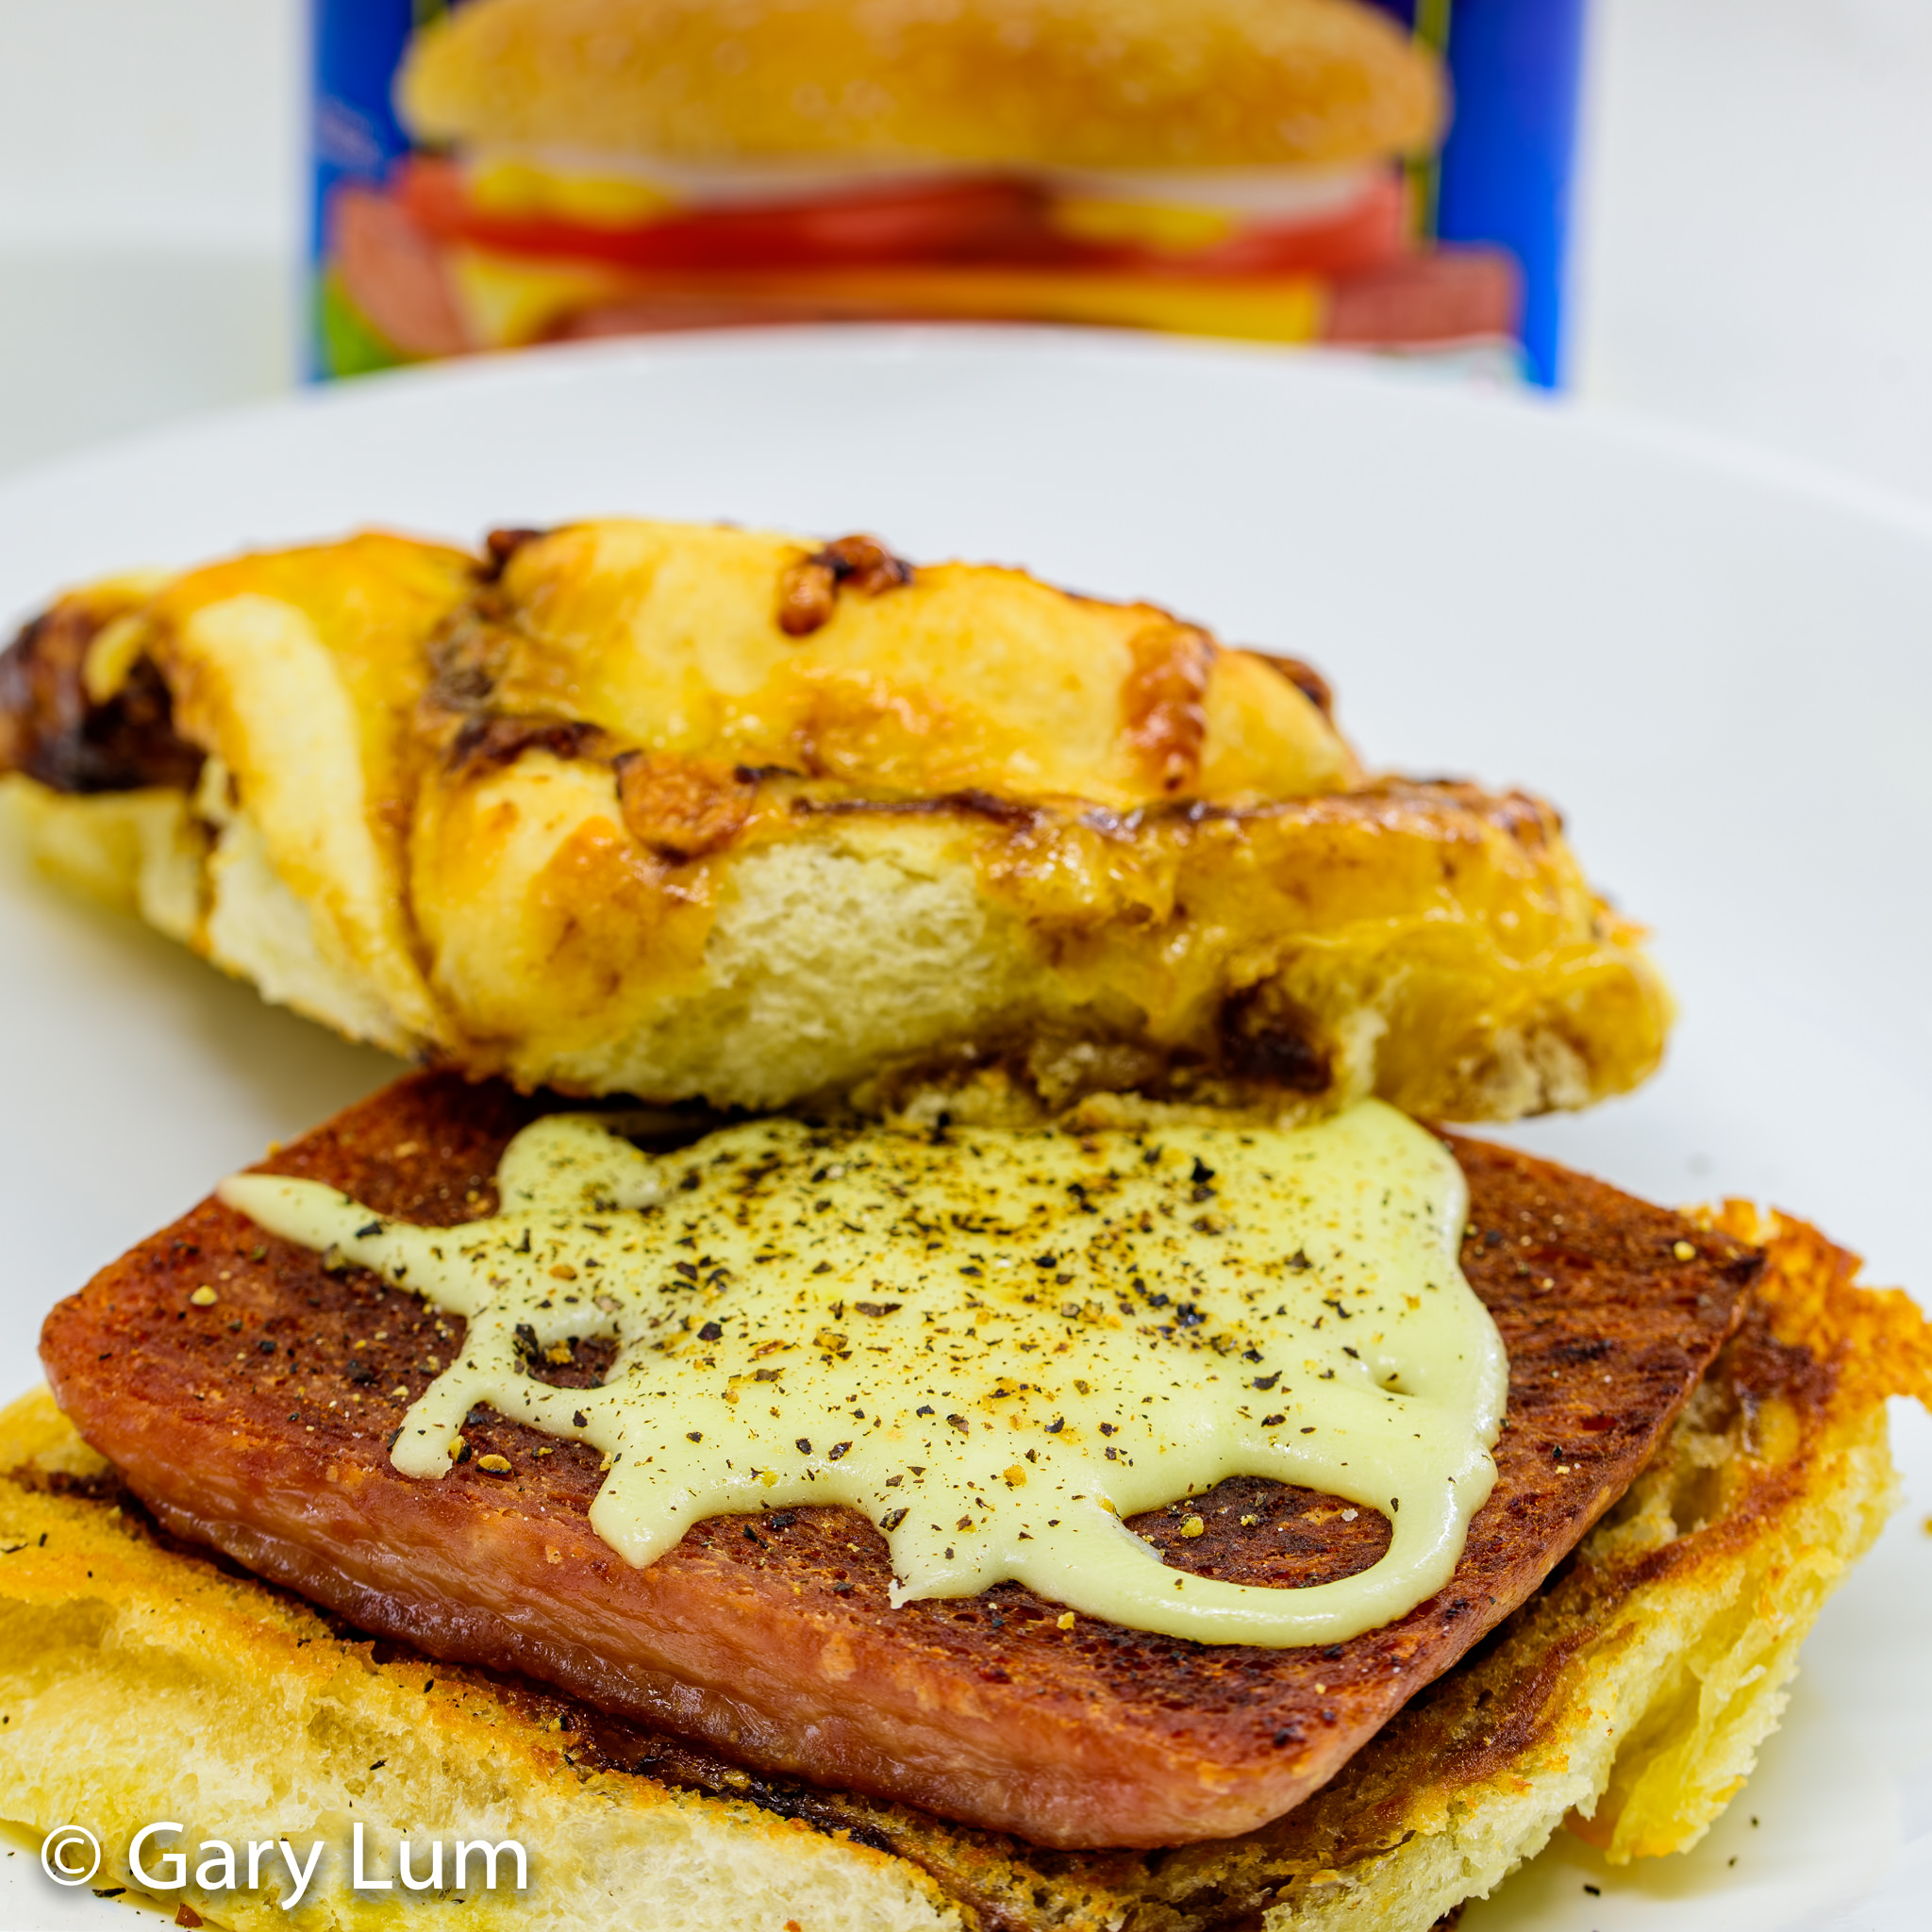 Close up. Pan-fried Spam with melted Mozzarella on a Coles Cheesy Vegemite Scroll. Gary Lum.